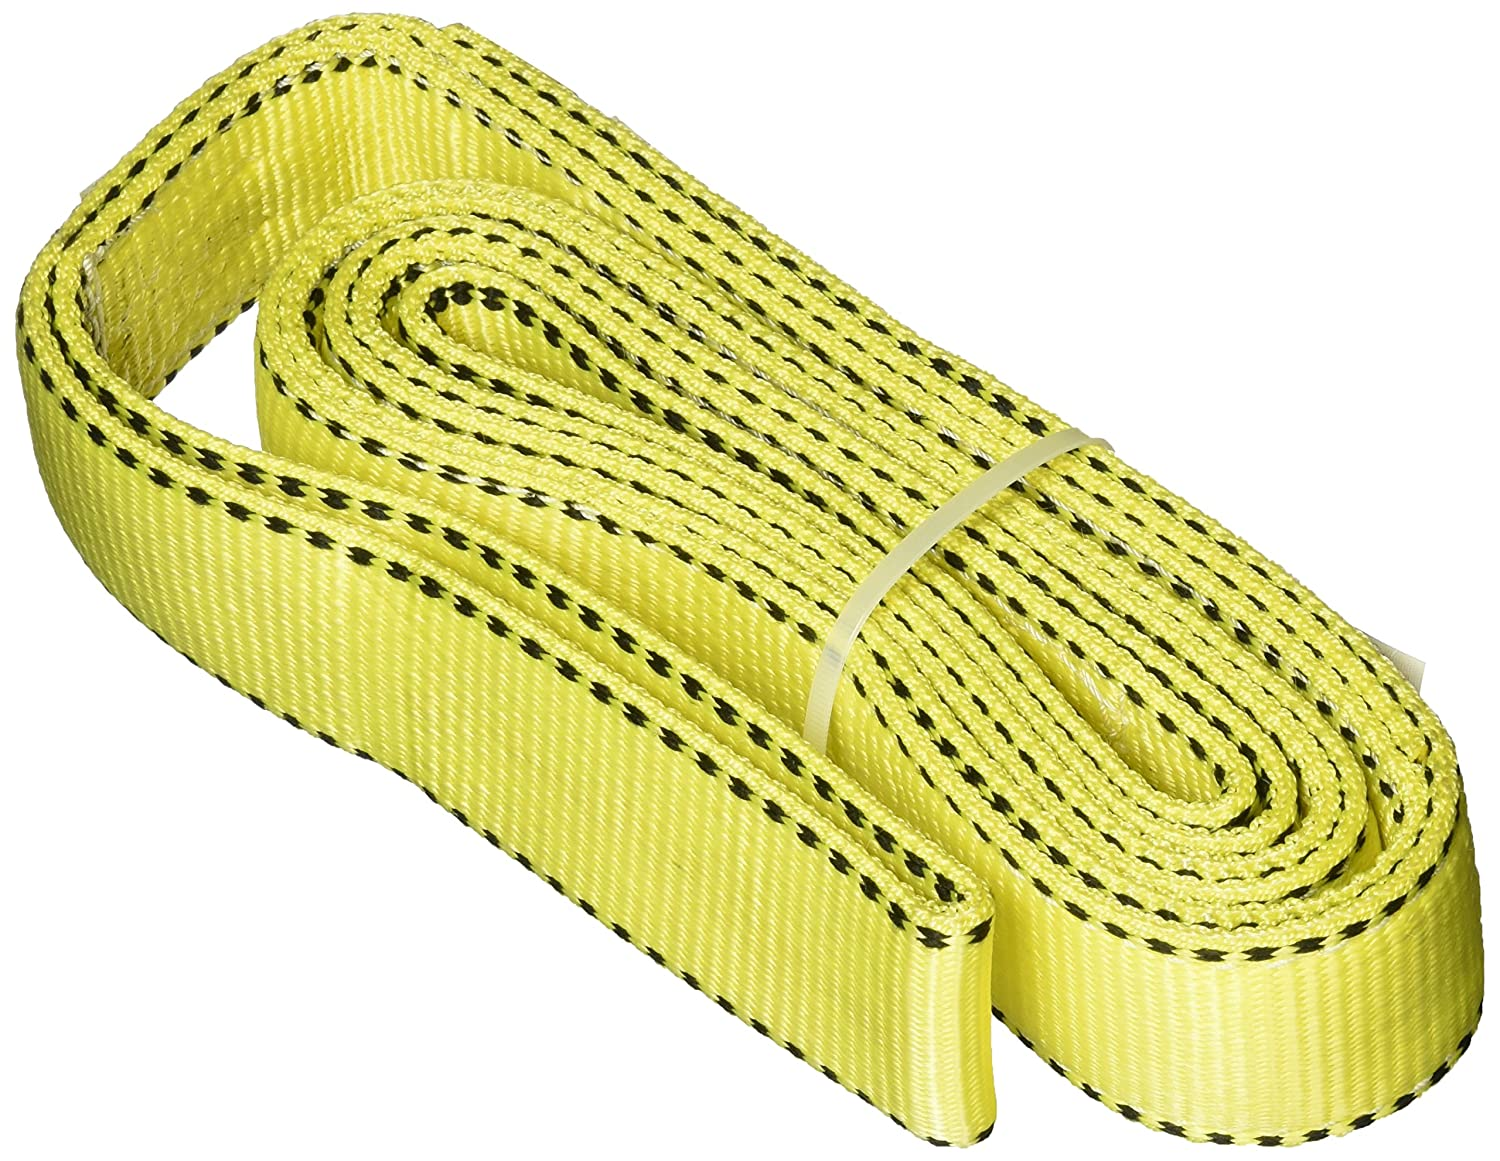 Liftex EN194X12PD Endless Pro-Edge Polyester Web Sling 4 x 12 Yellow 1-Ply